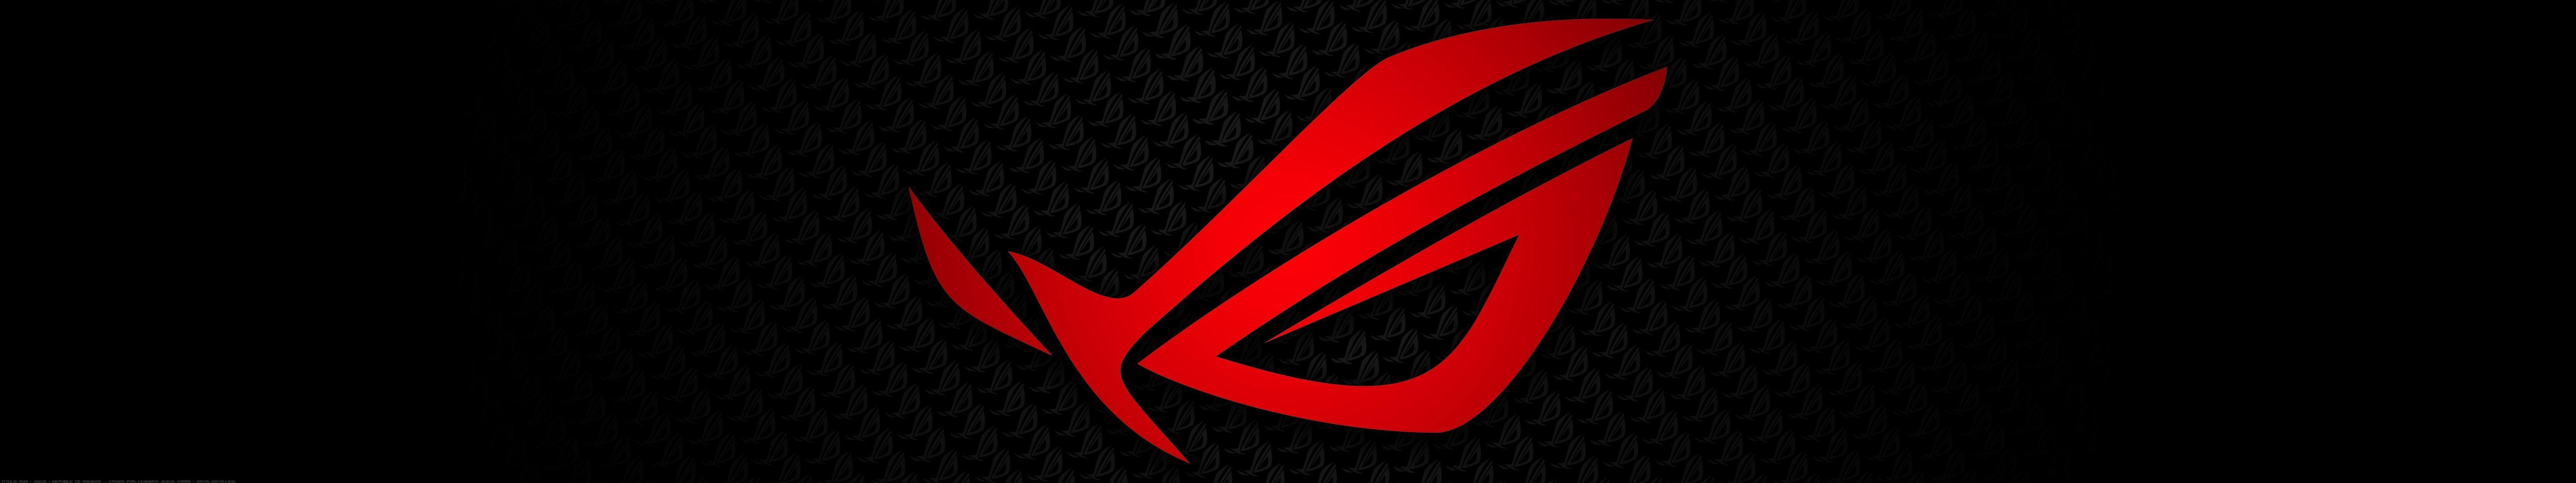 WallpaperFusion-asus-republic-of-gamers-...0x1080.jpg